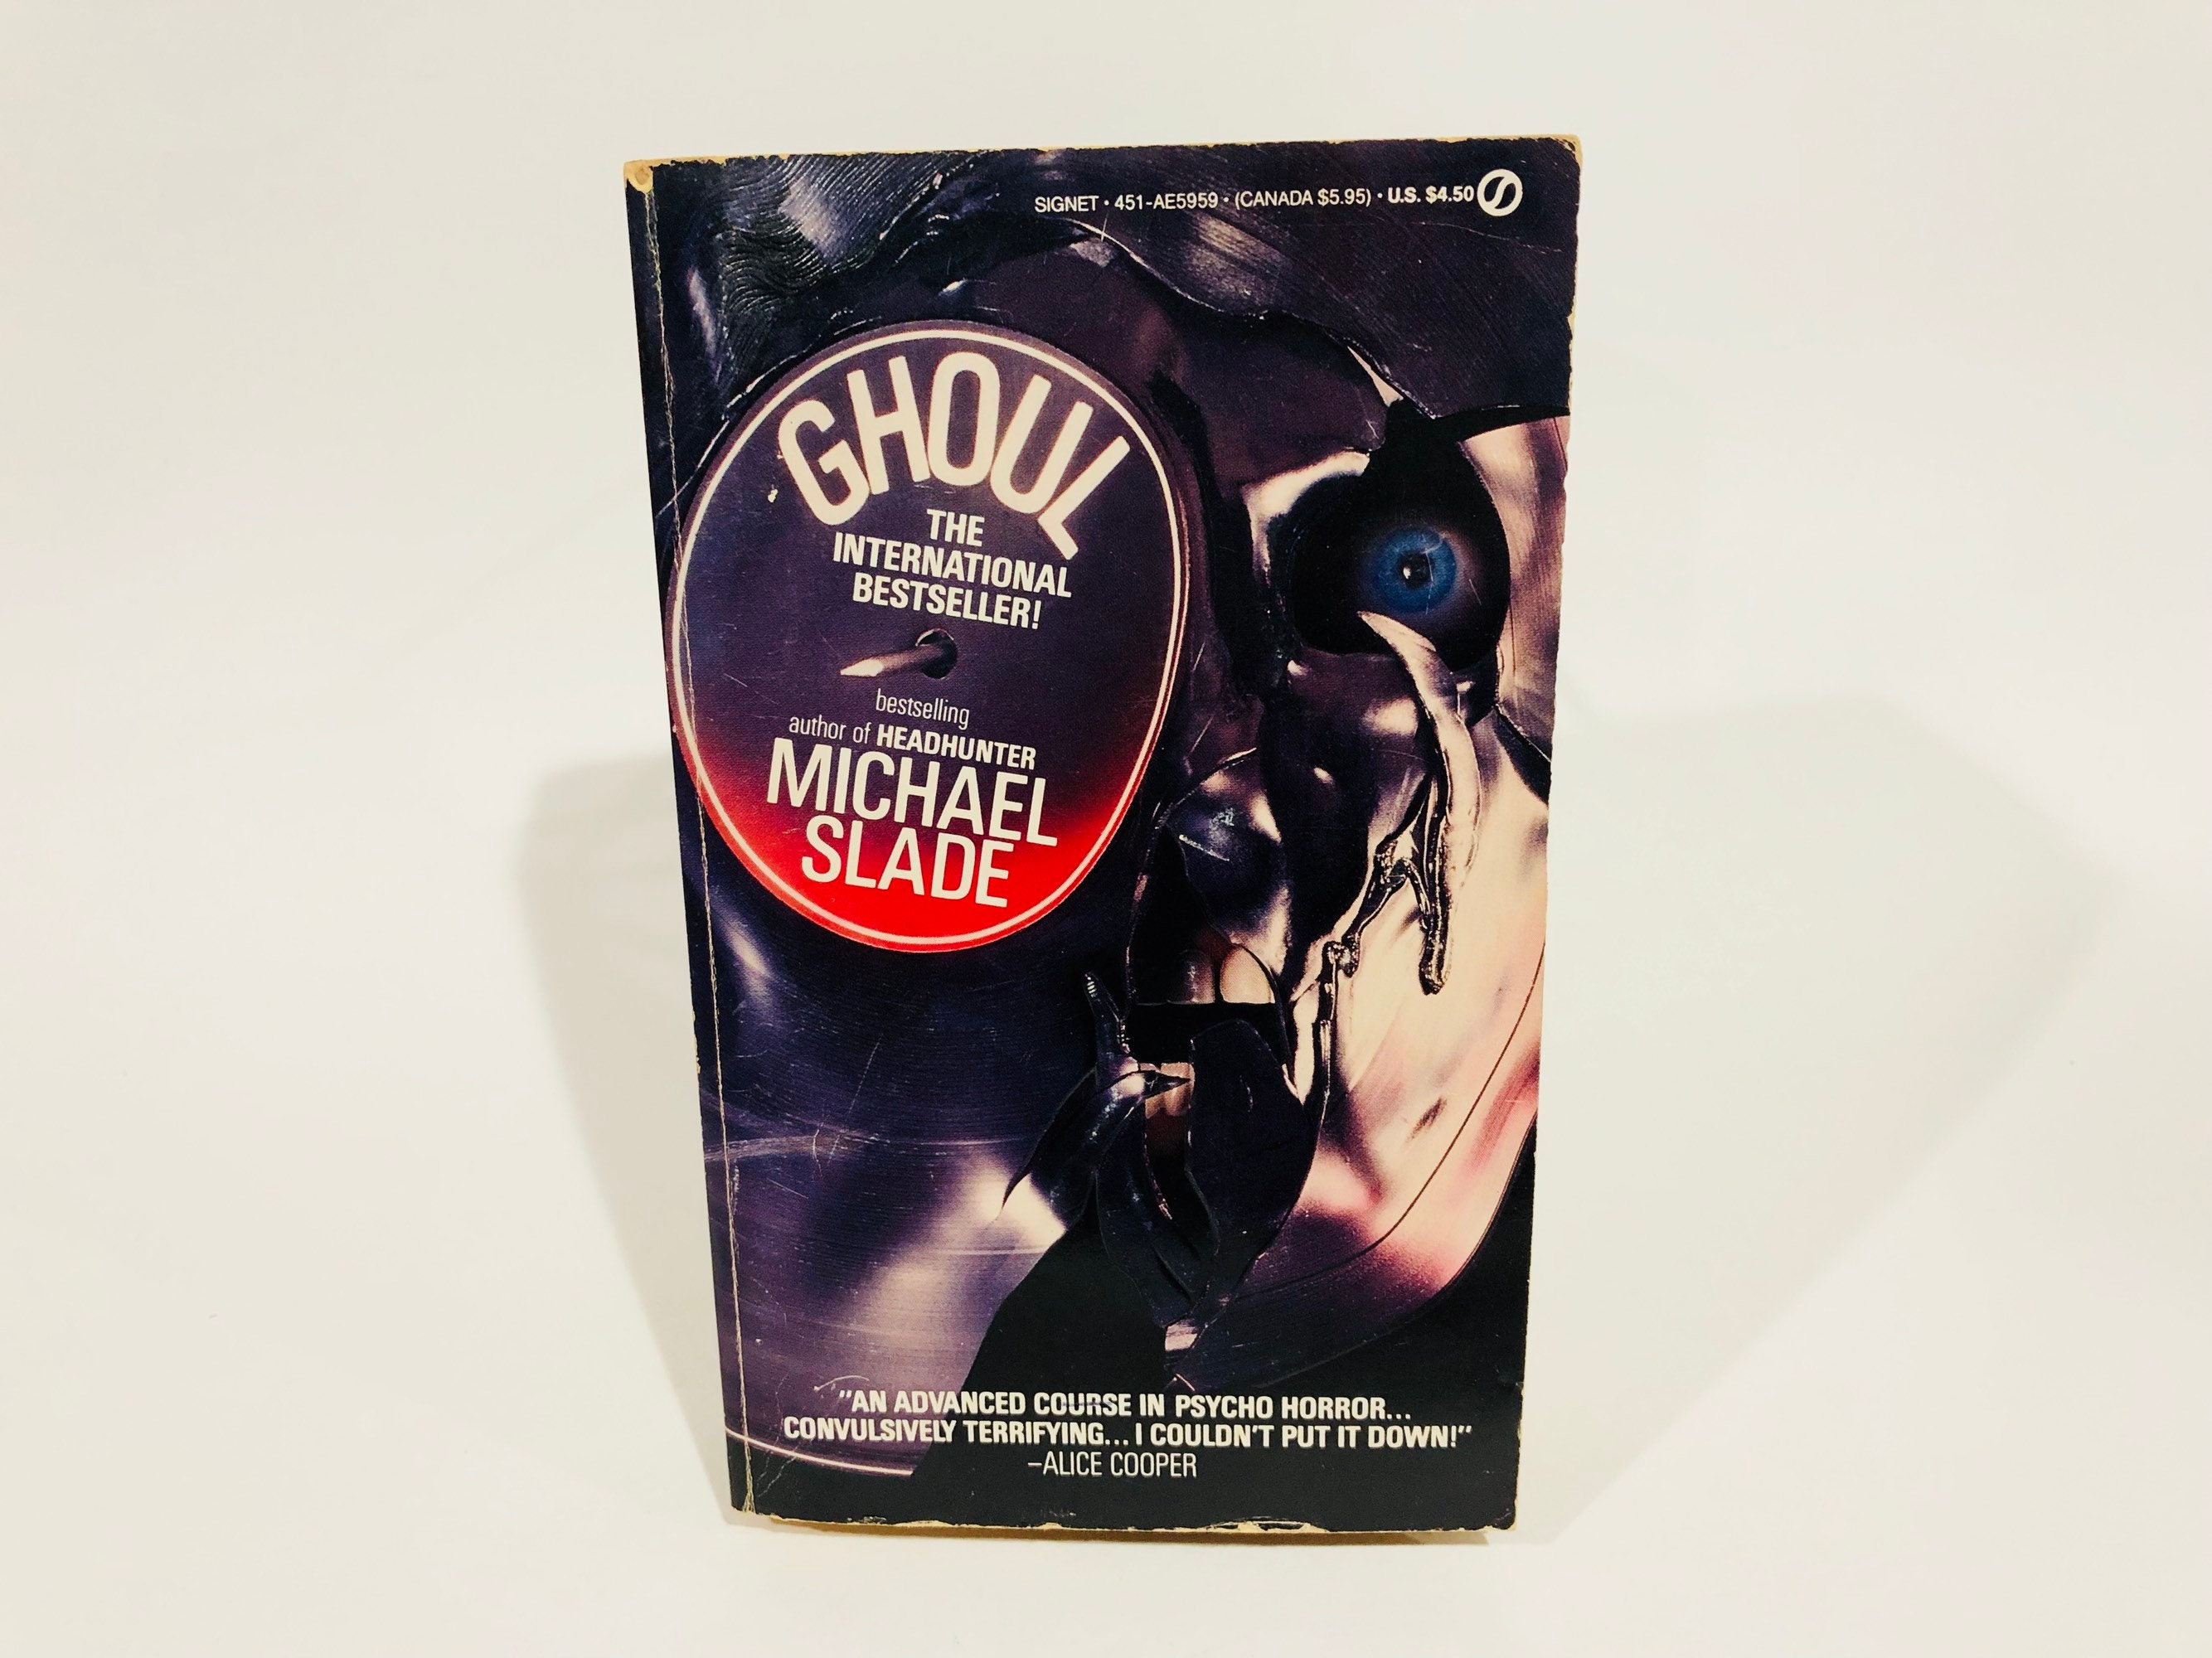 Vintage Horror Book Ghoul By Michael Slade 1989 Paperback Etsy Headseet Kw Zoom